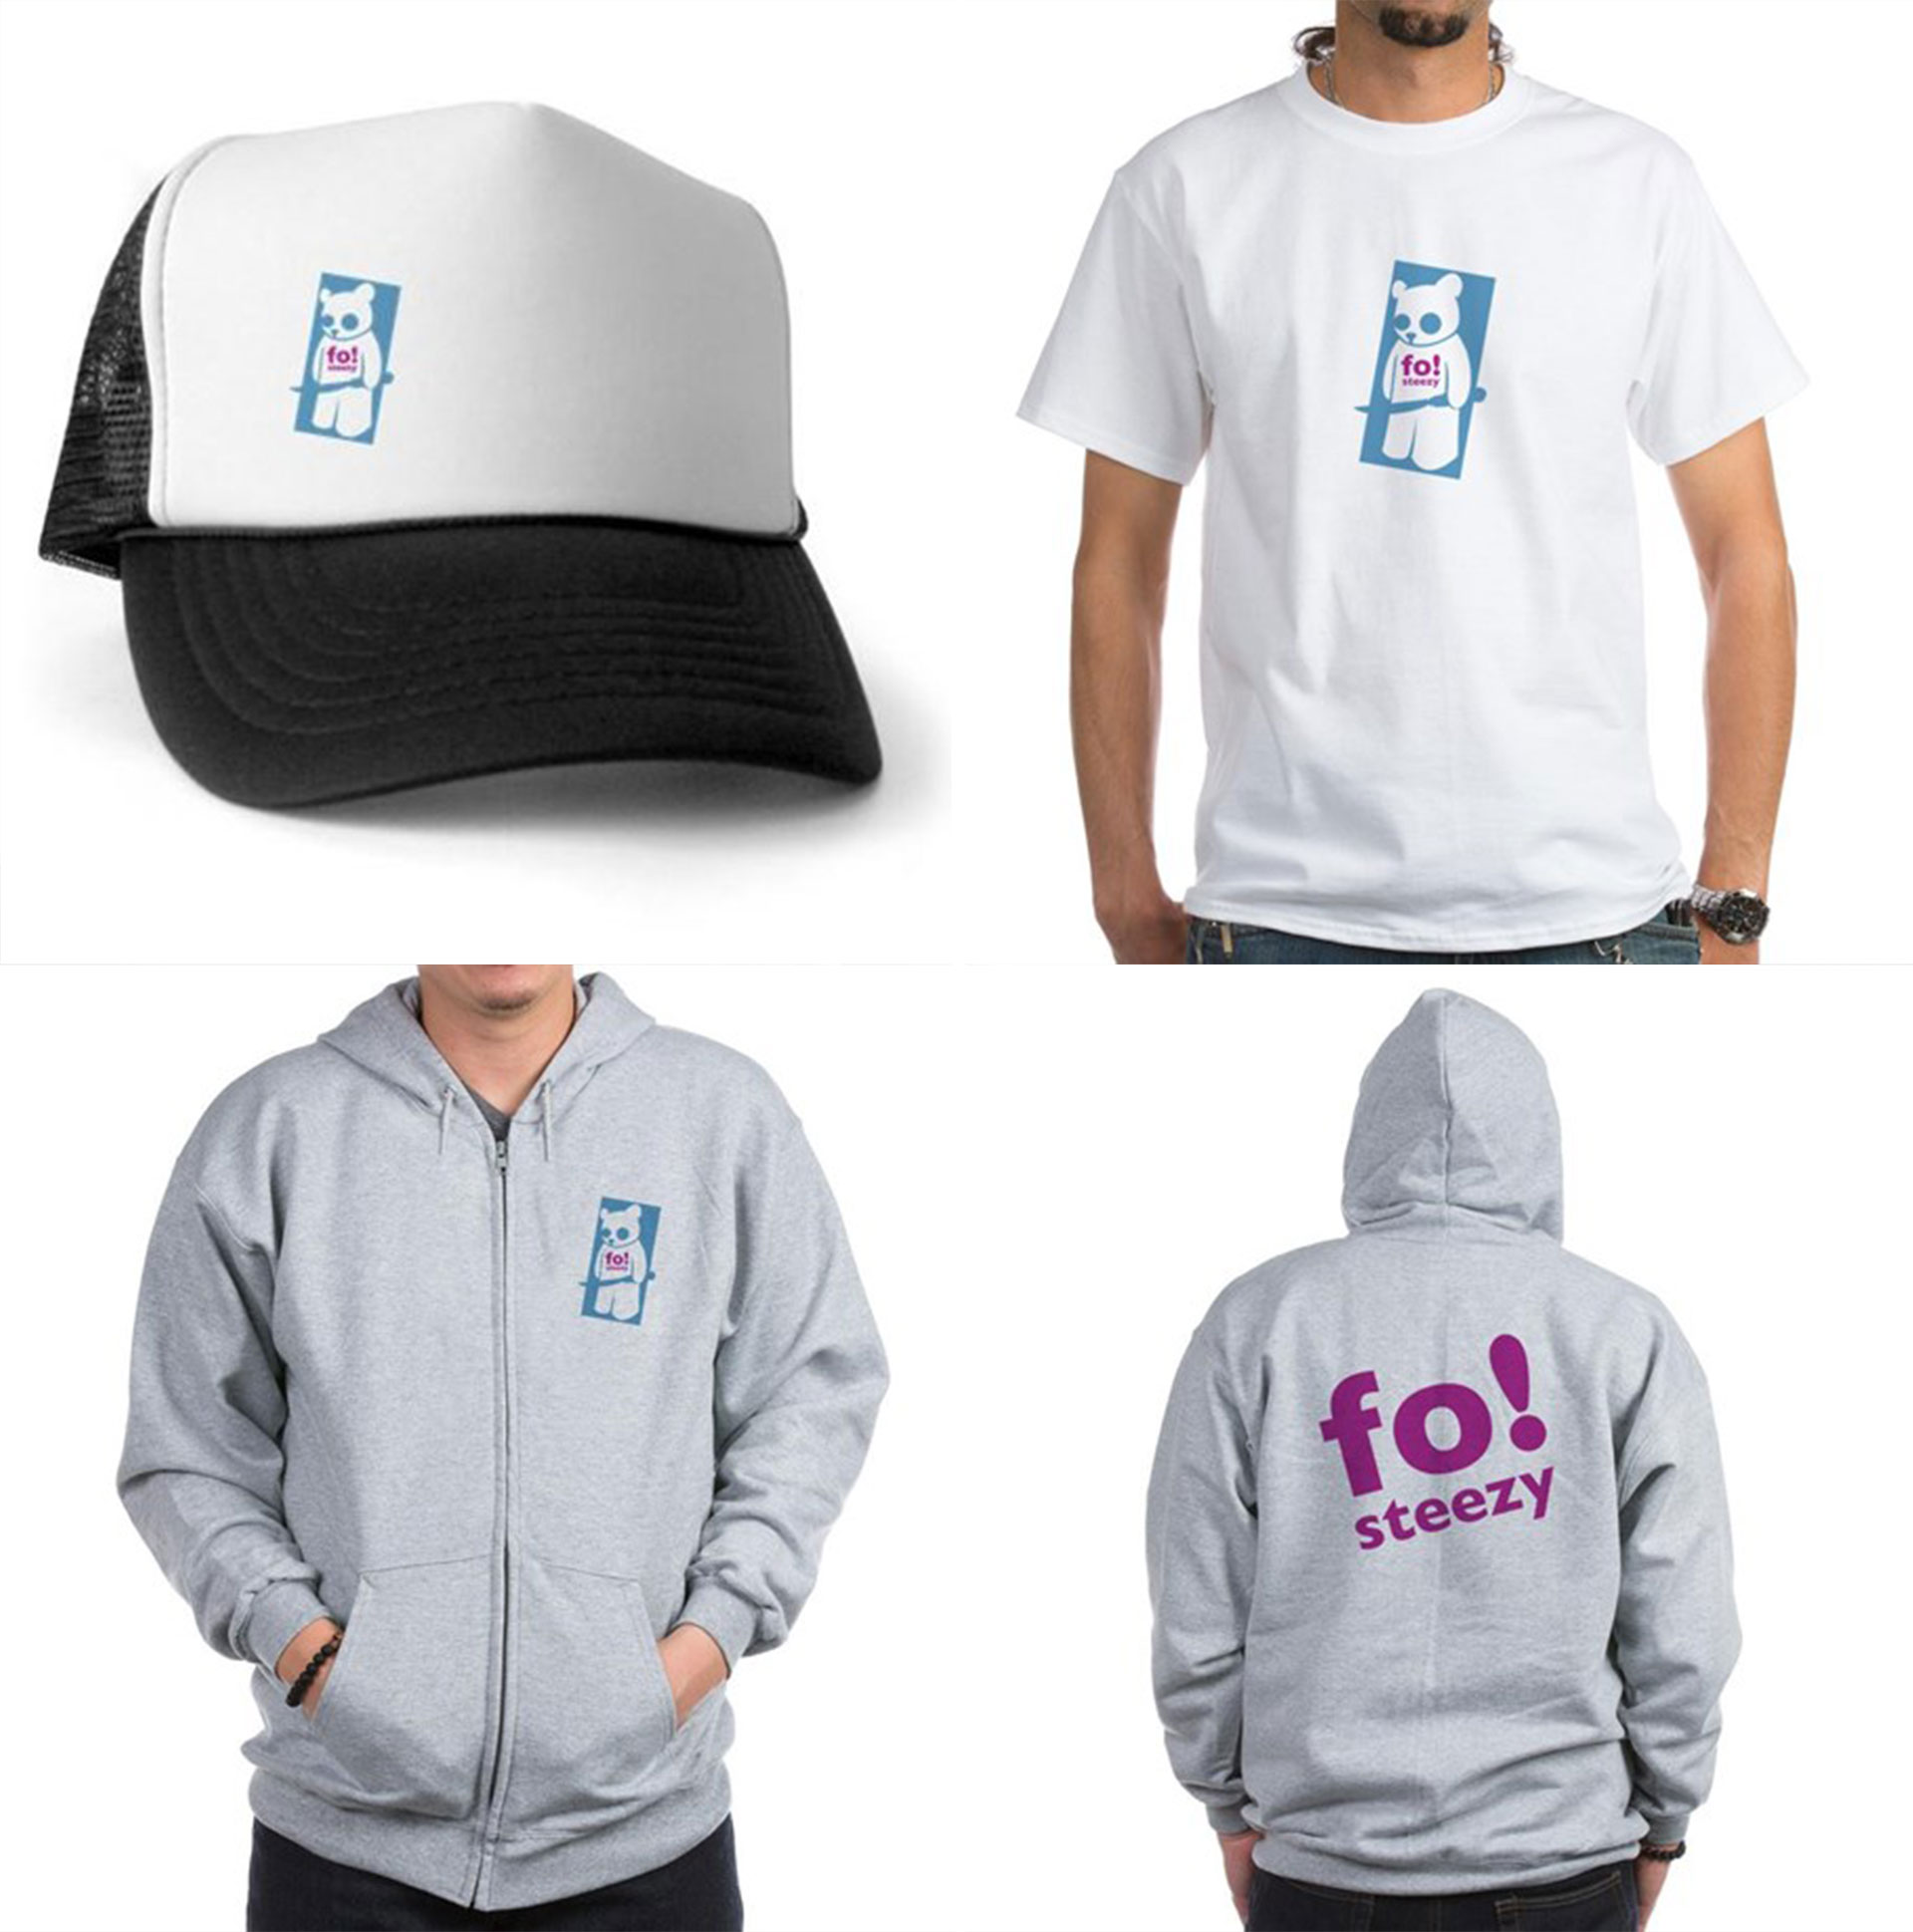 fosteezy apparel mockups